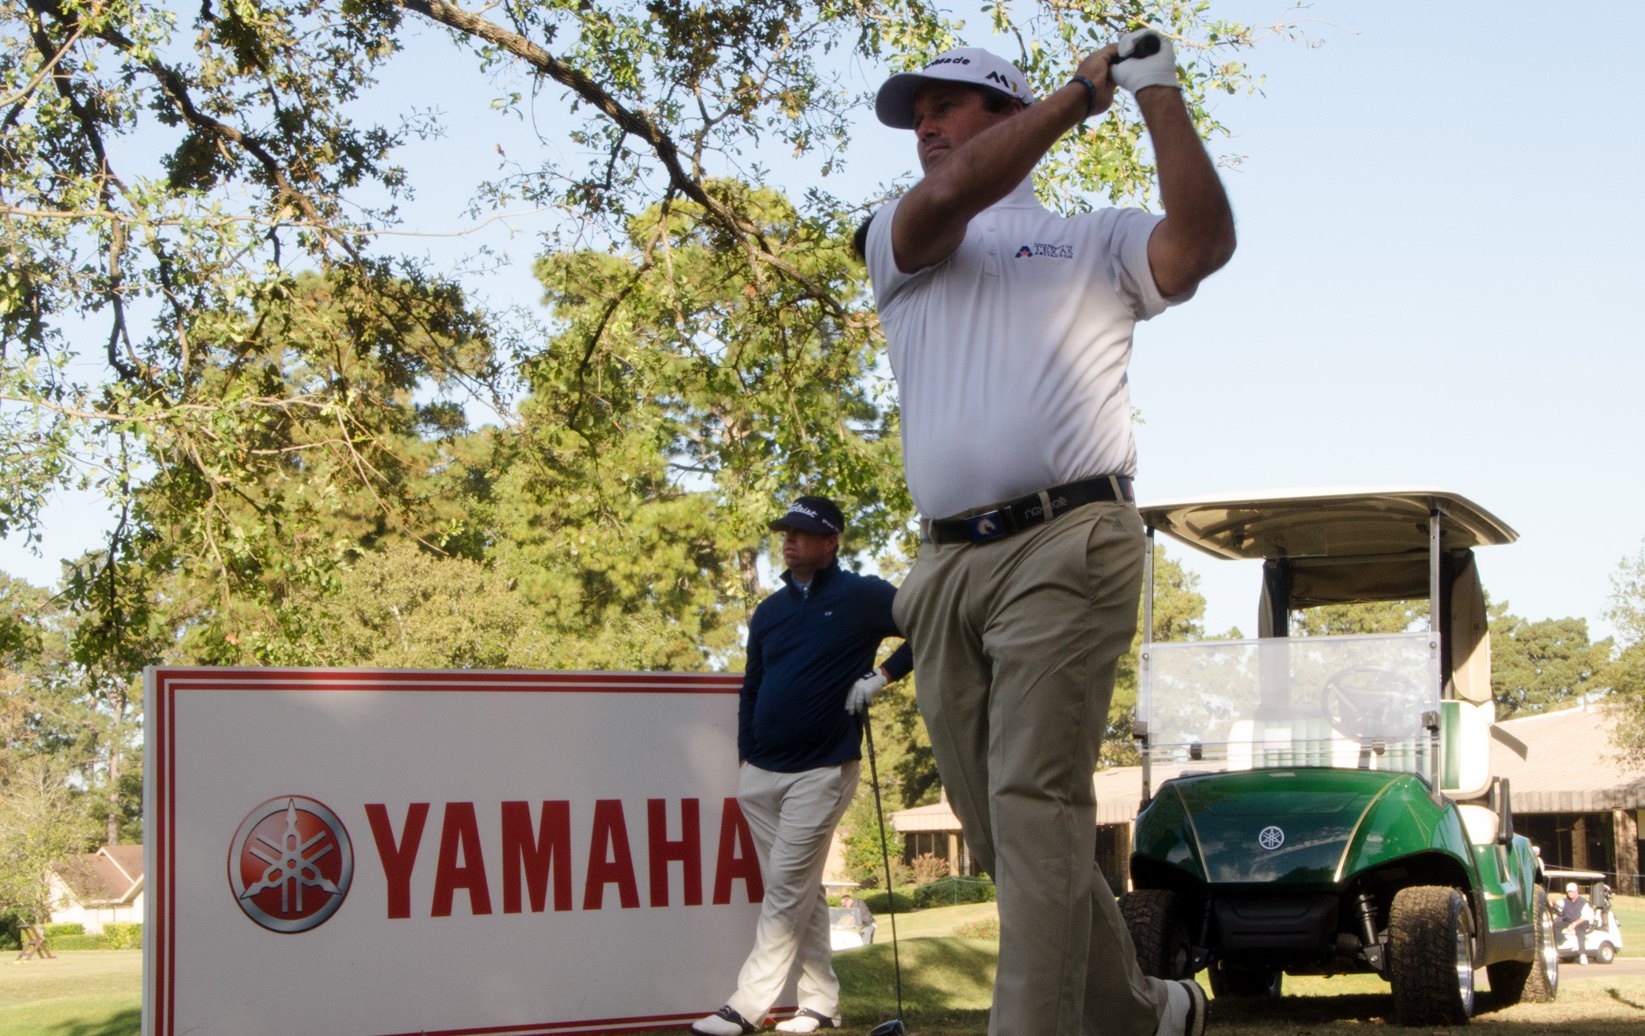 Two Rounds Complete at the Yamaha Golf-Car Company/ Lajitas Golf Resort Match Play Championship